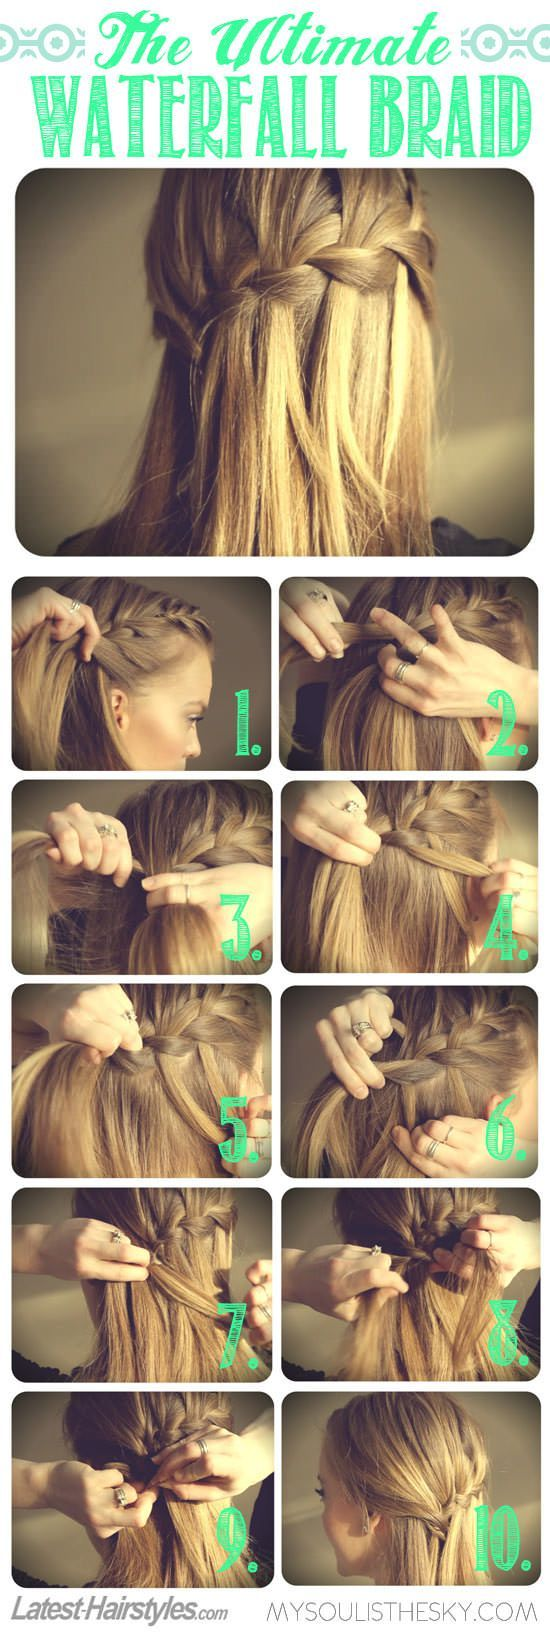 The ULTIMATE Waterfall Braid Tutorial – Seriously one of the easiest tutorial for this braid that we have EVER seen… #diy #hair